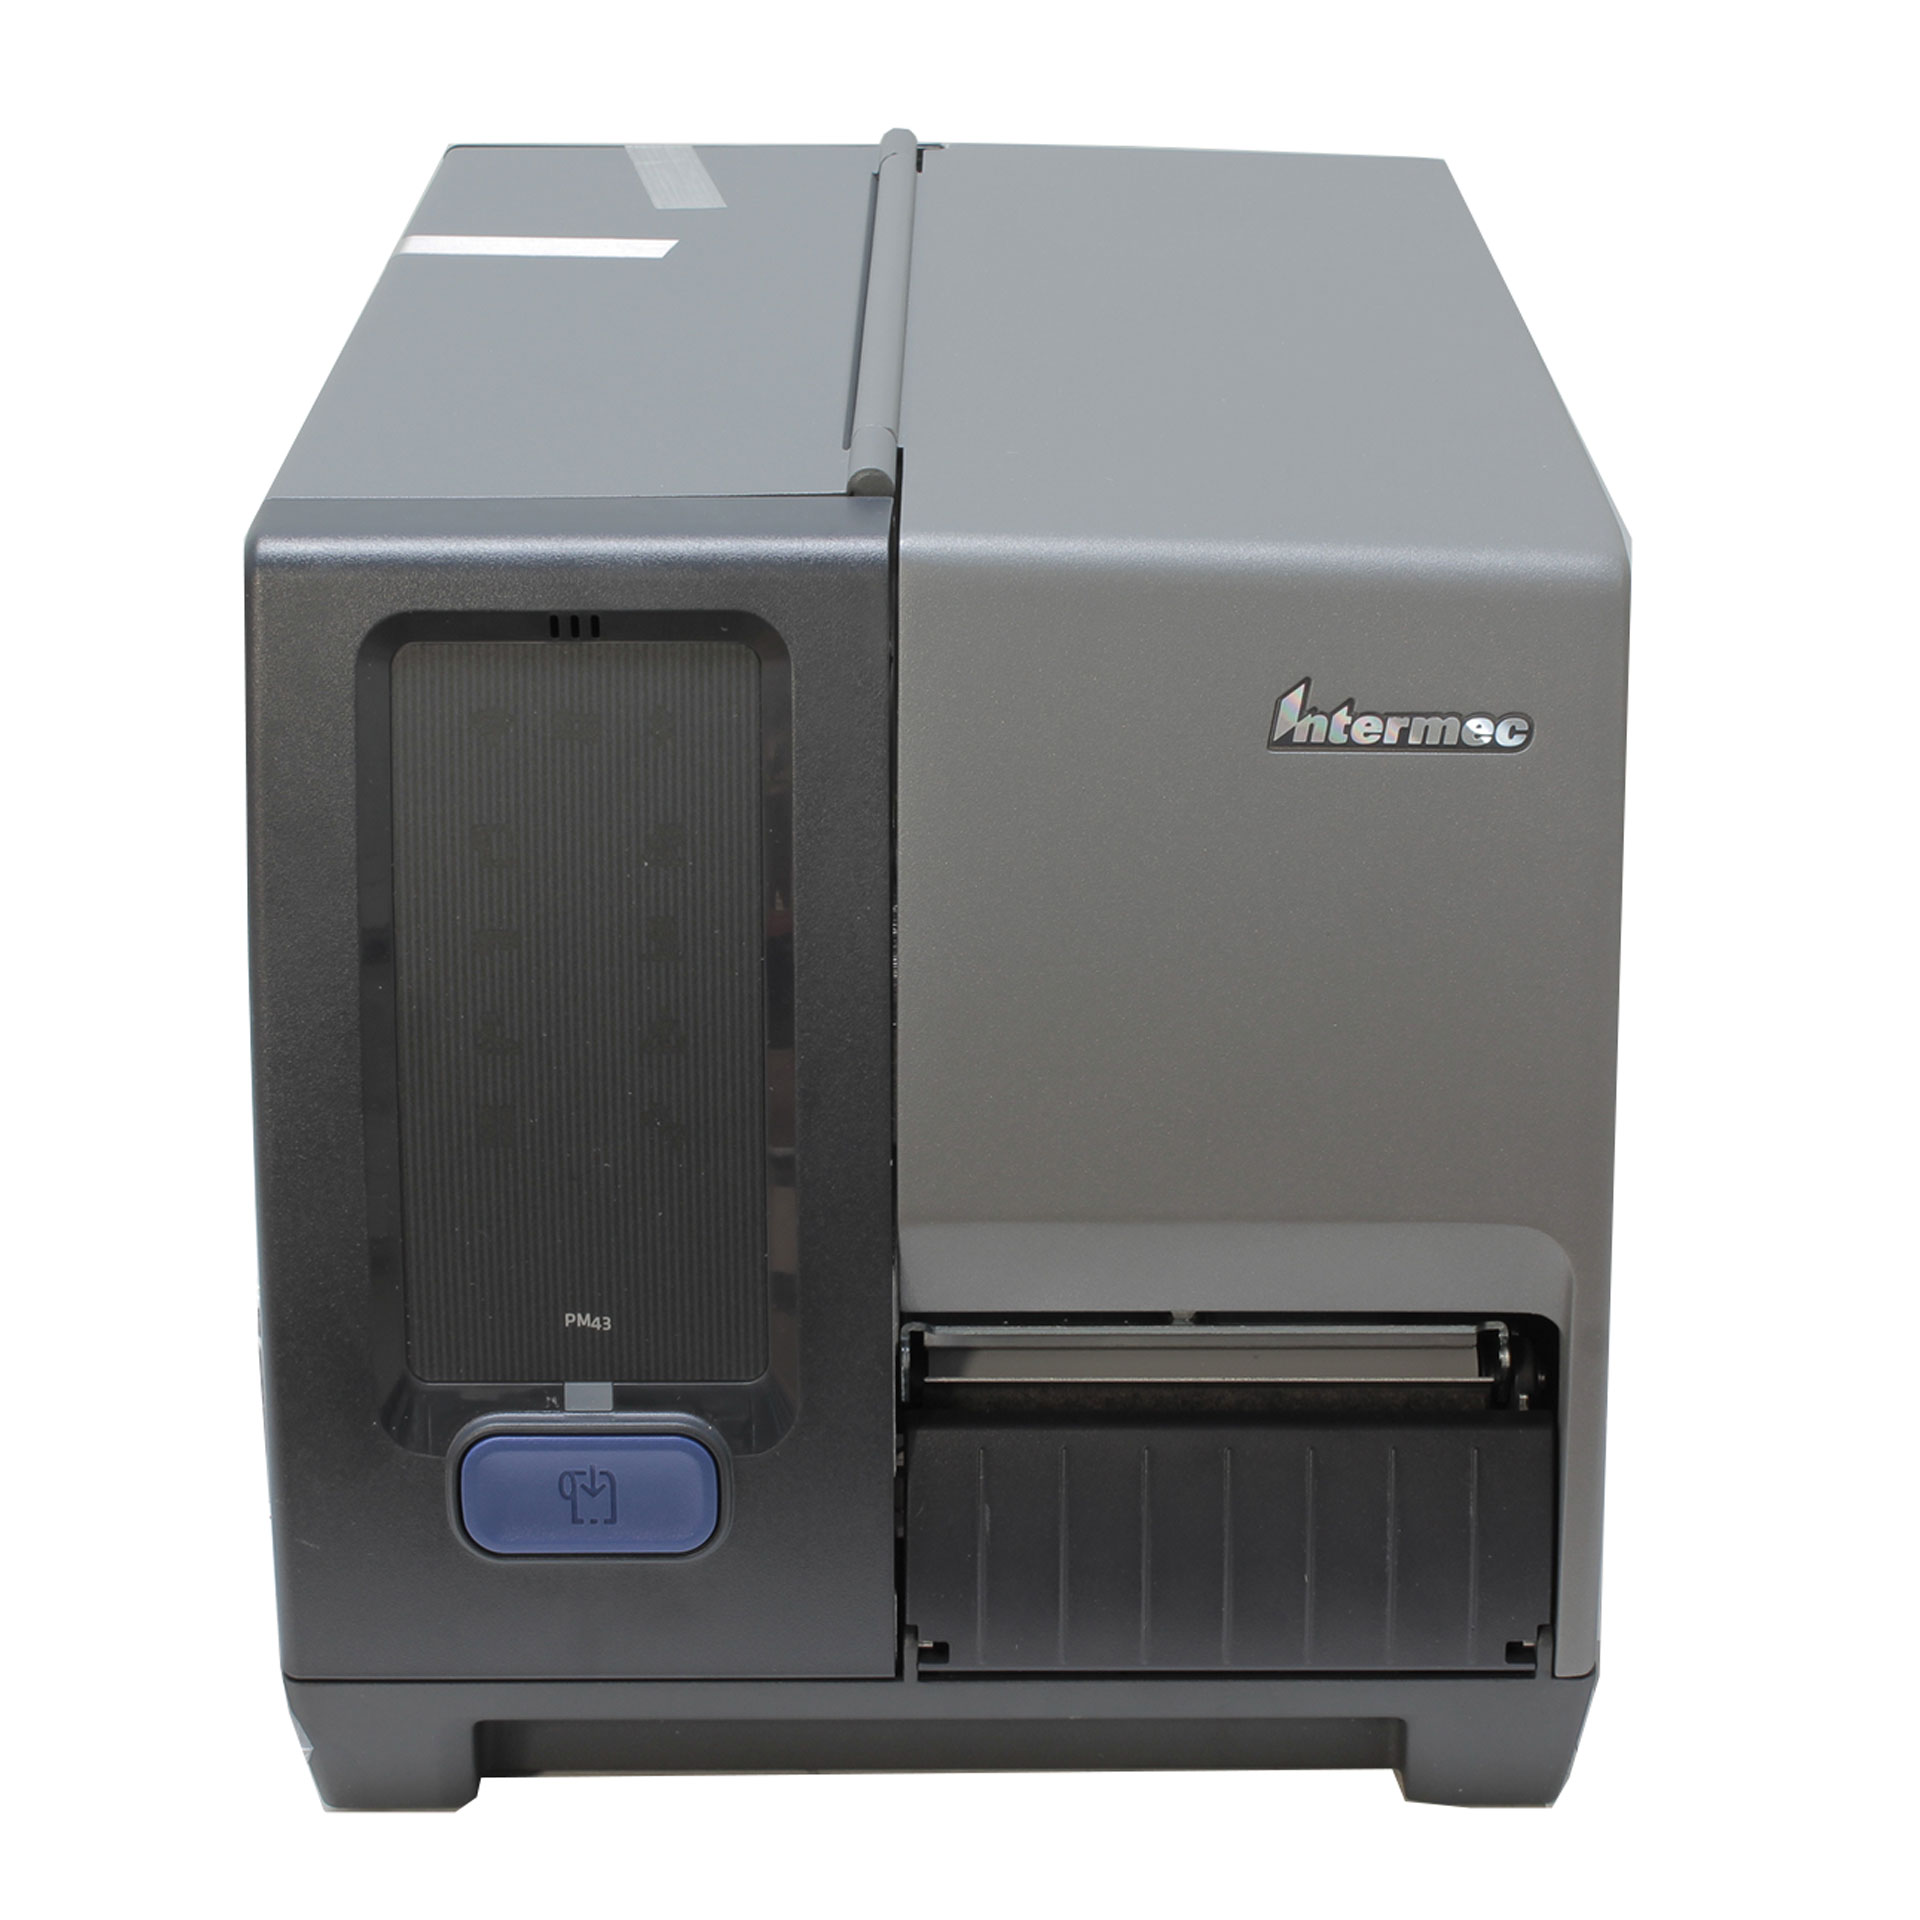 Intermec PM43 label printer 203 dpi USB LAN PM43A0100000021